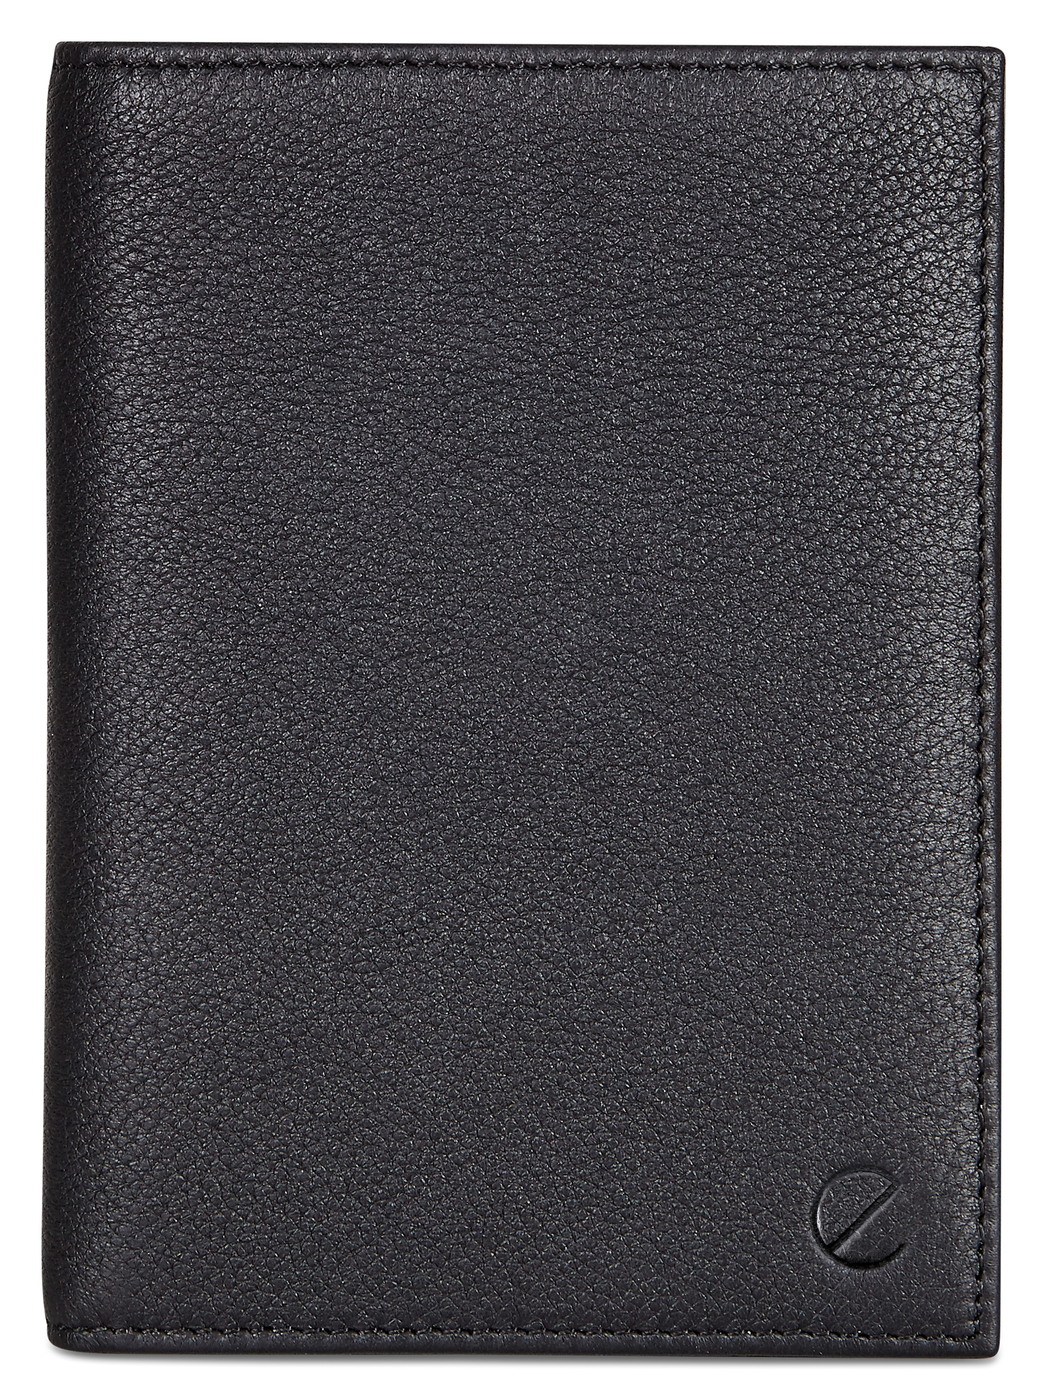 ECCO Jos Passport Holder